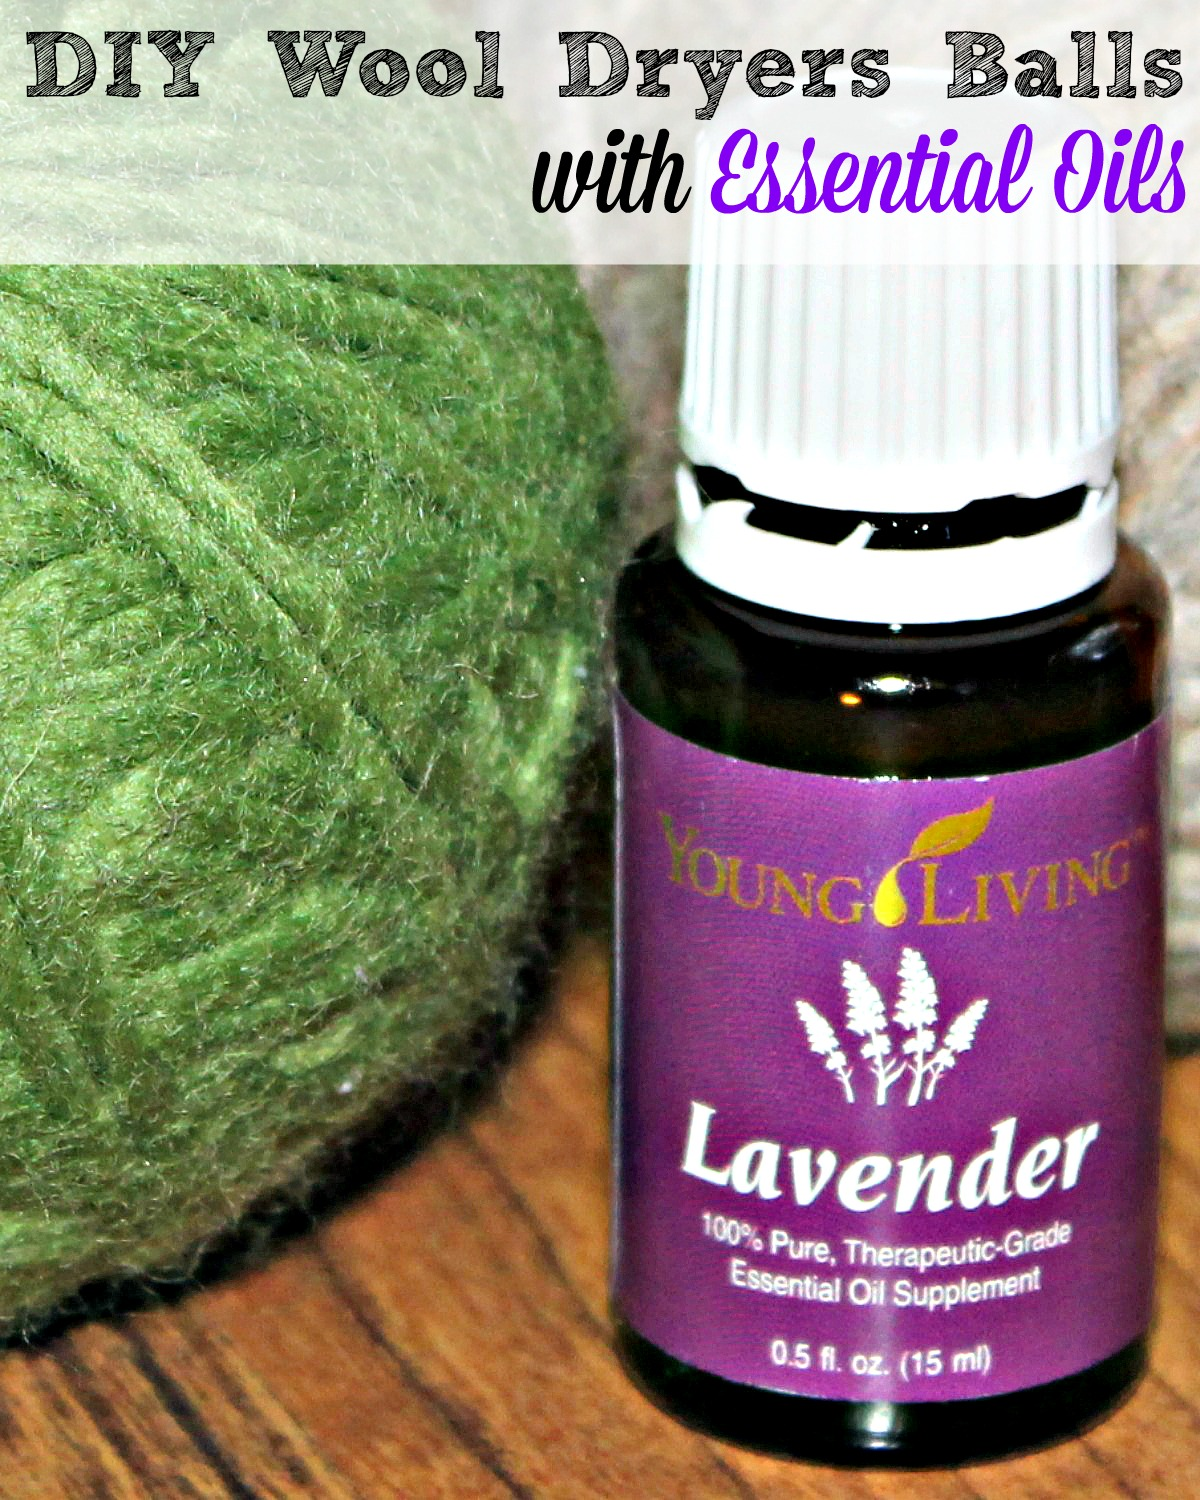 DIY Wool Dryer Balls With Essential Oils